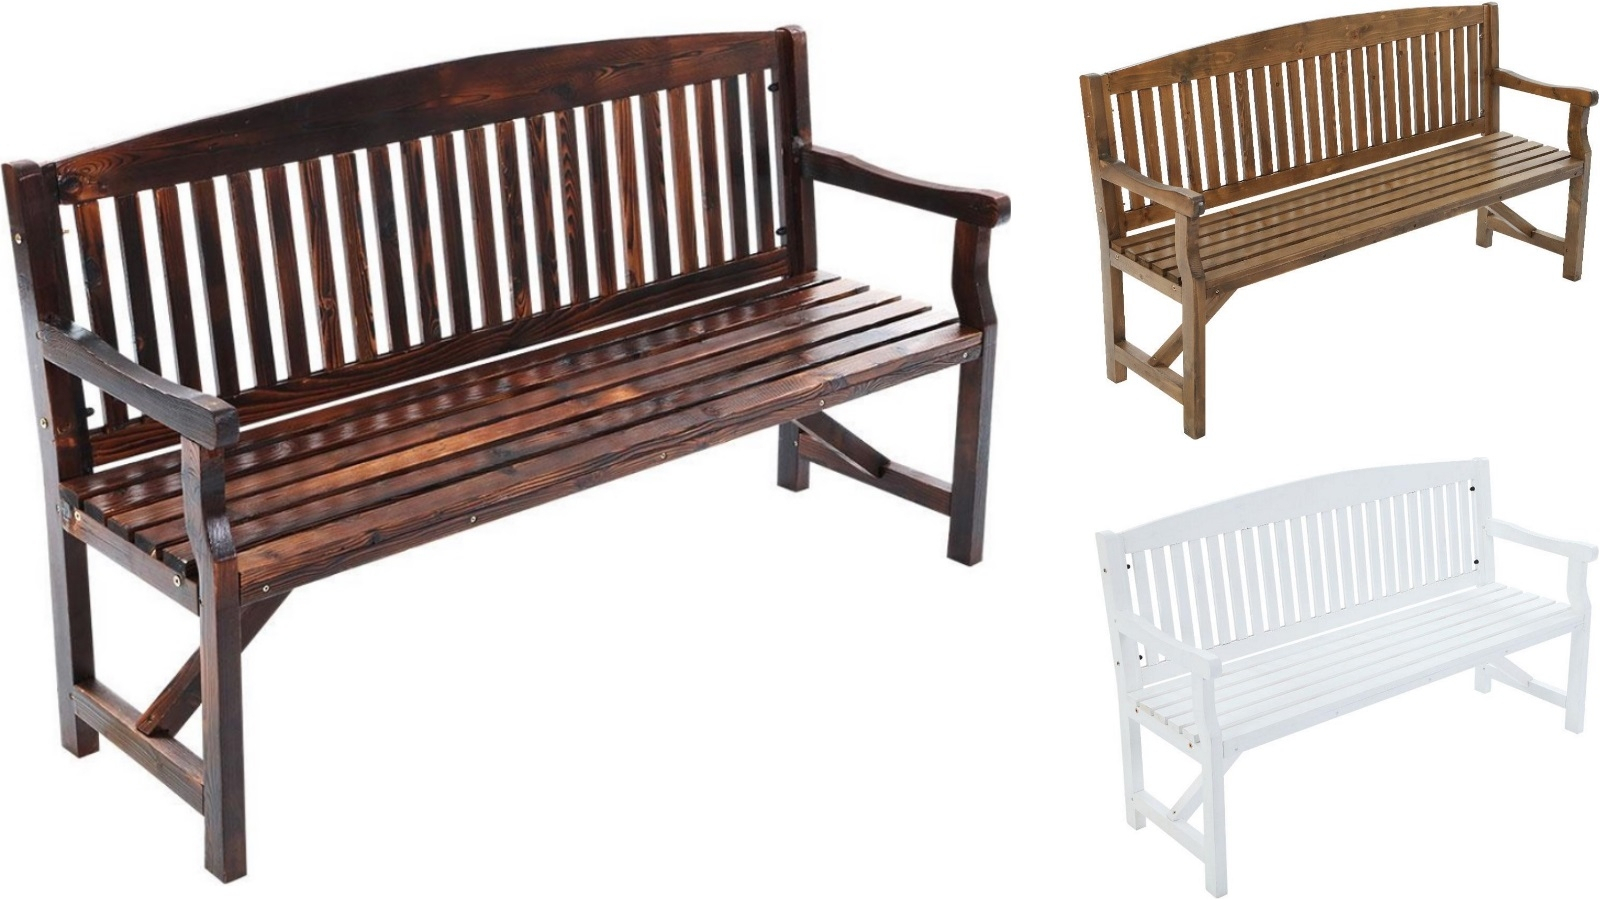 Gardeon 3 Seater Wooden Garden Bench Chair With Regard To Manchester Wooden Garden Benches (View 8 of 25)